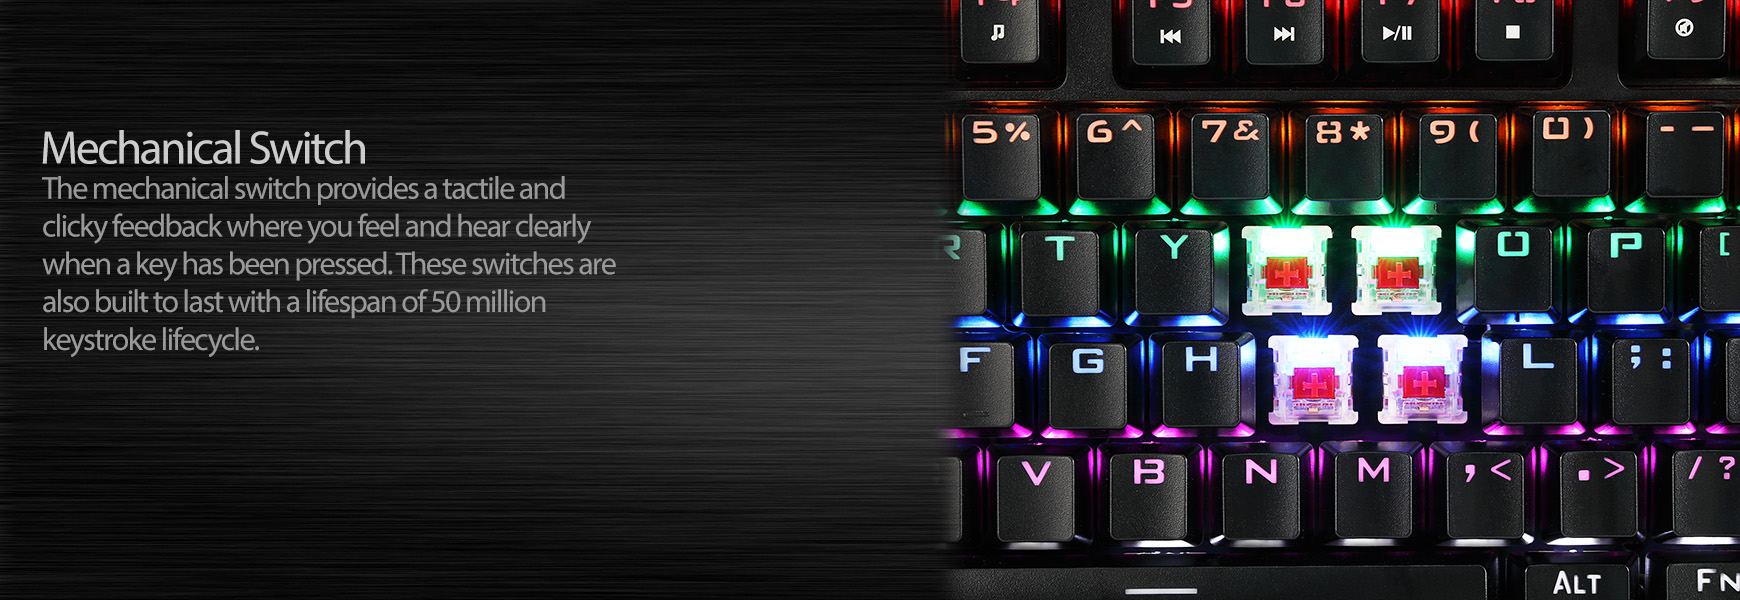 Multi Color Illuminated Mechanical Gaming Keyboard Adesso Inc Your Input Device Specialist